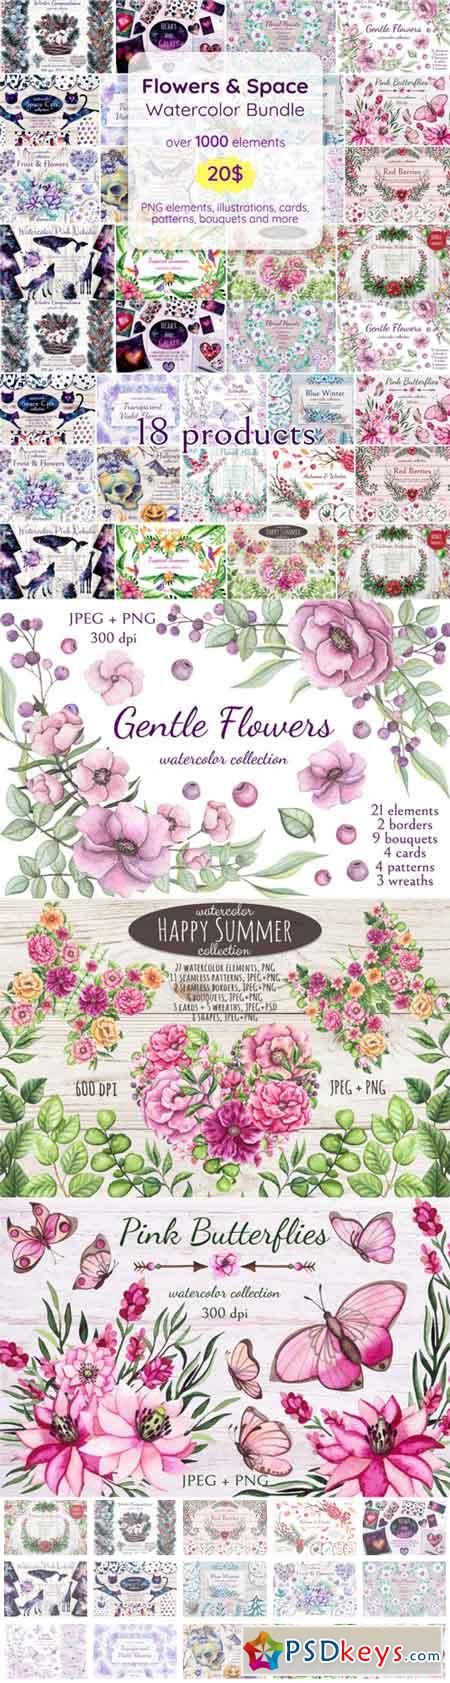 Flowers and Space Watercolor Bundle 3516427